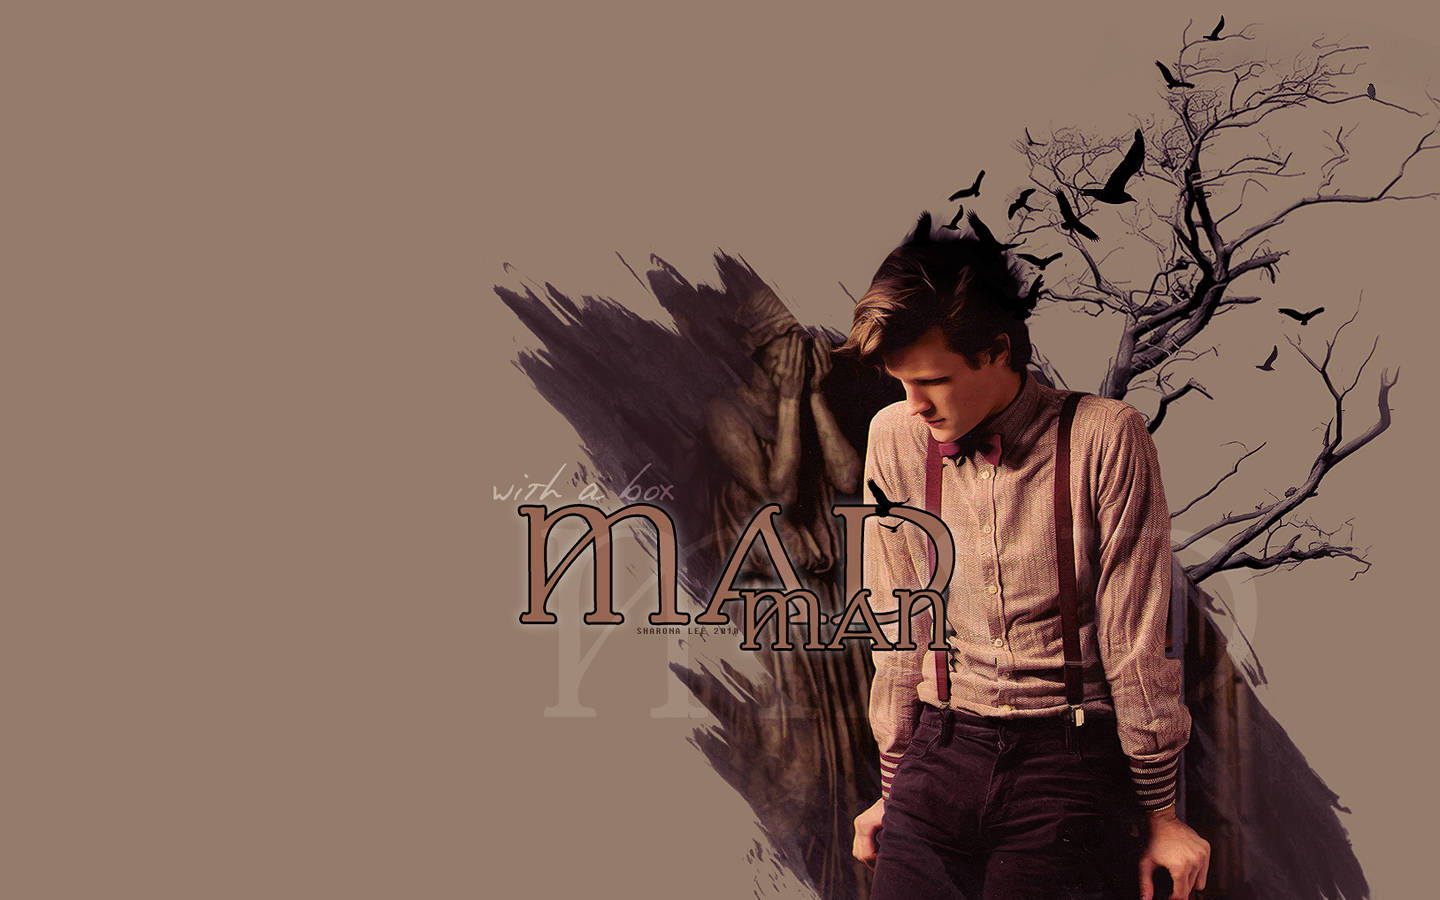 Matt Smith 1440900 Wallpaper 778246 1440x900